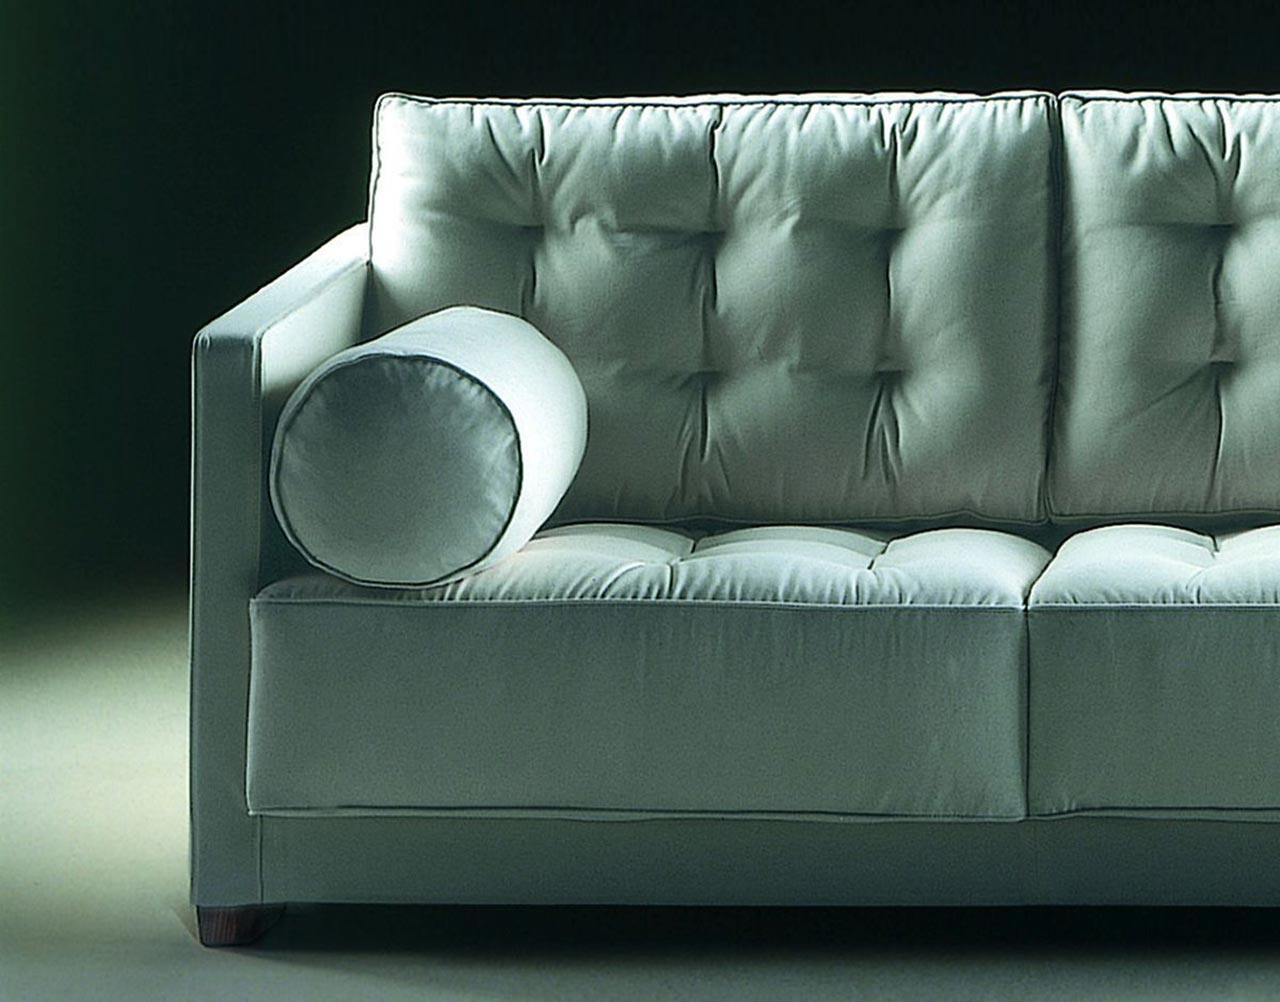 Tufted sofa le canap by flexform images for Le canape flexform